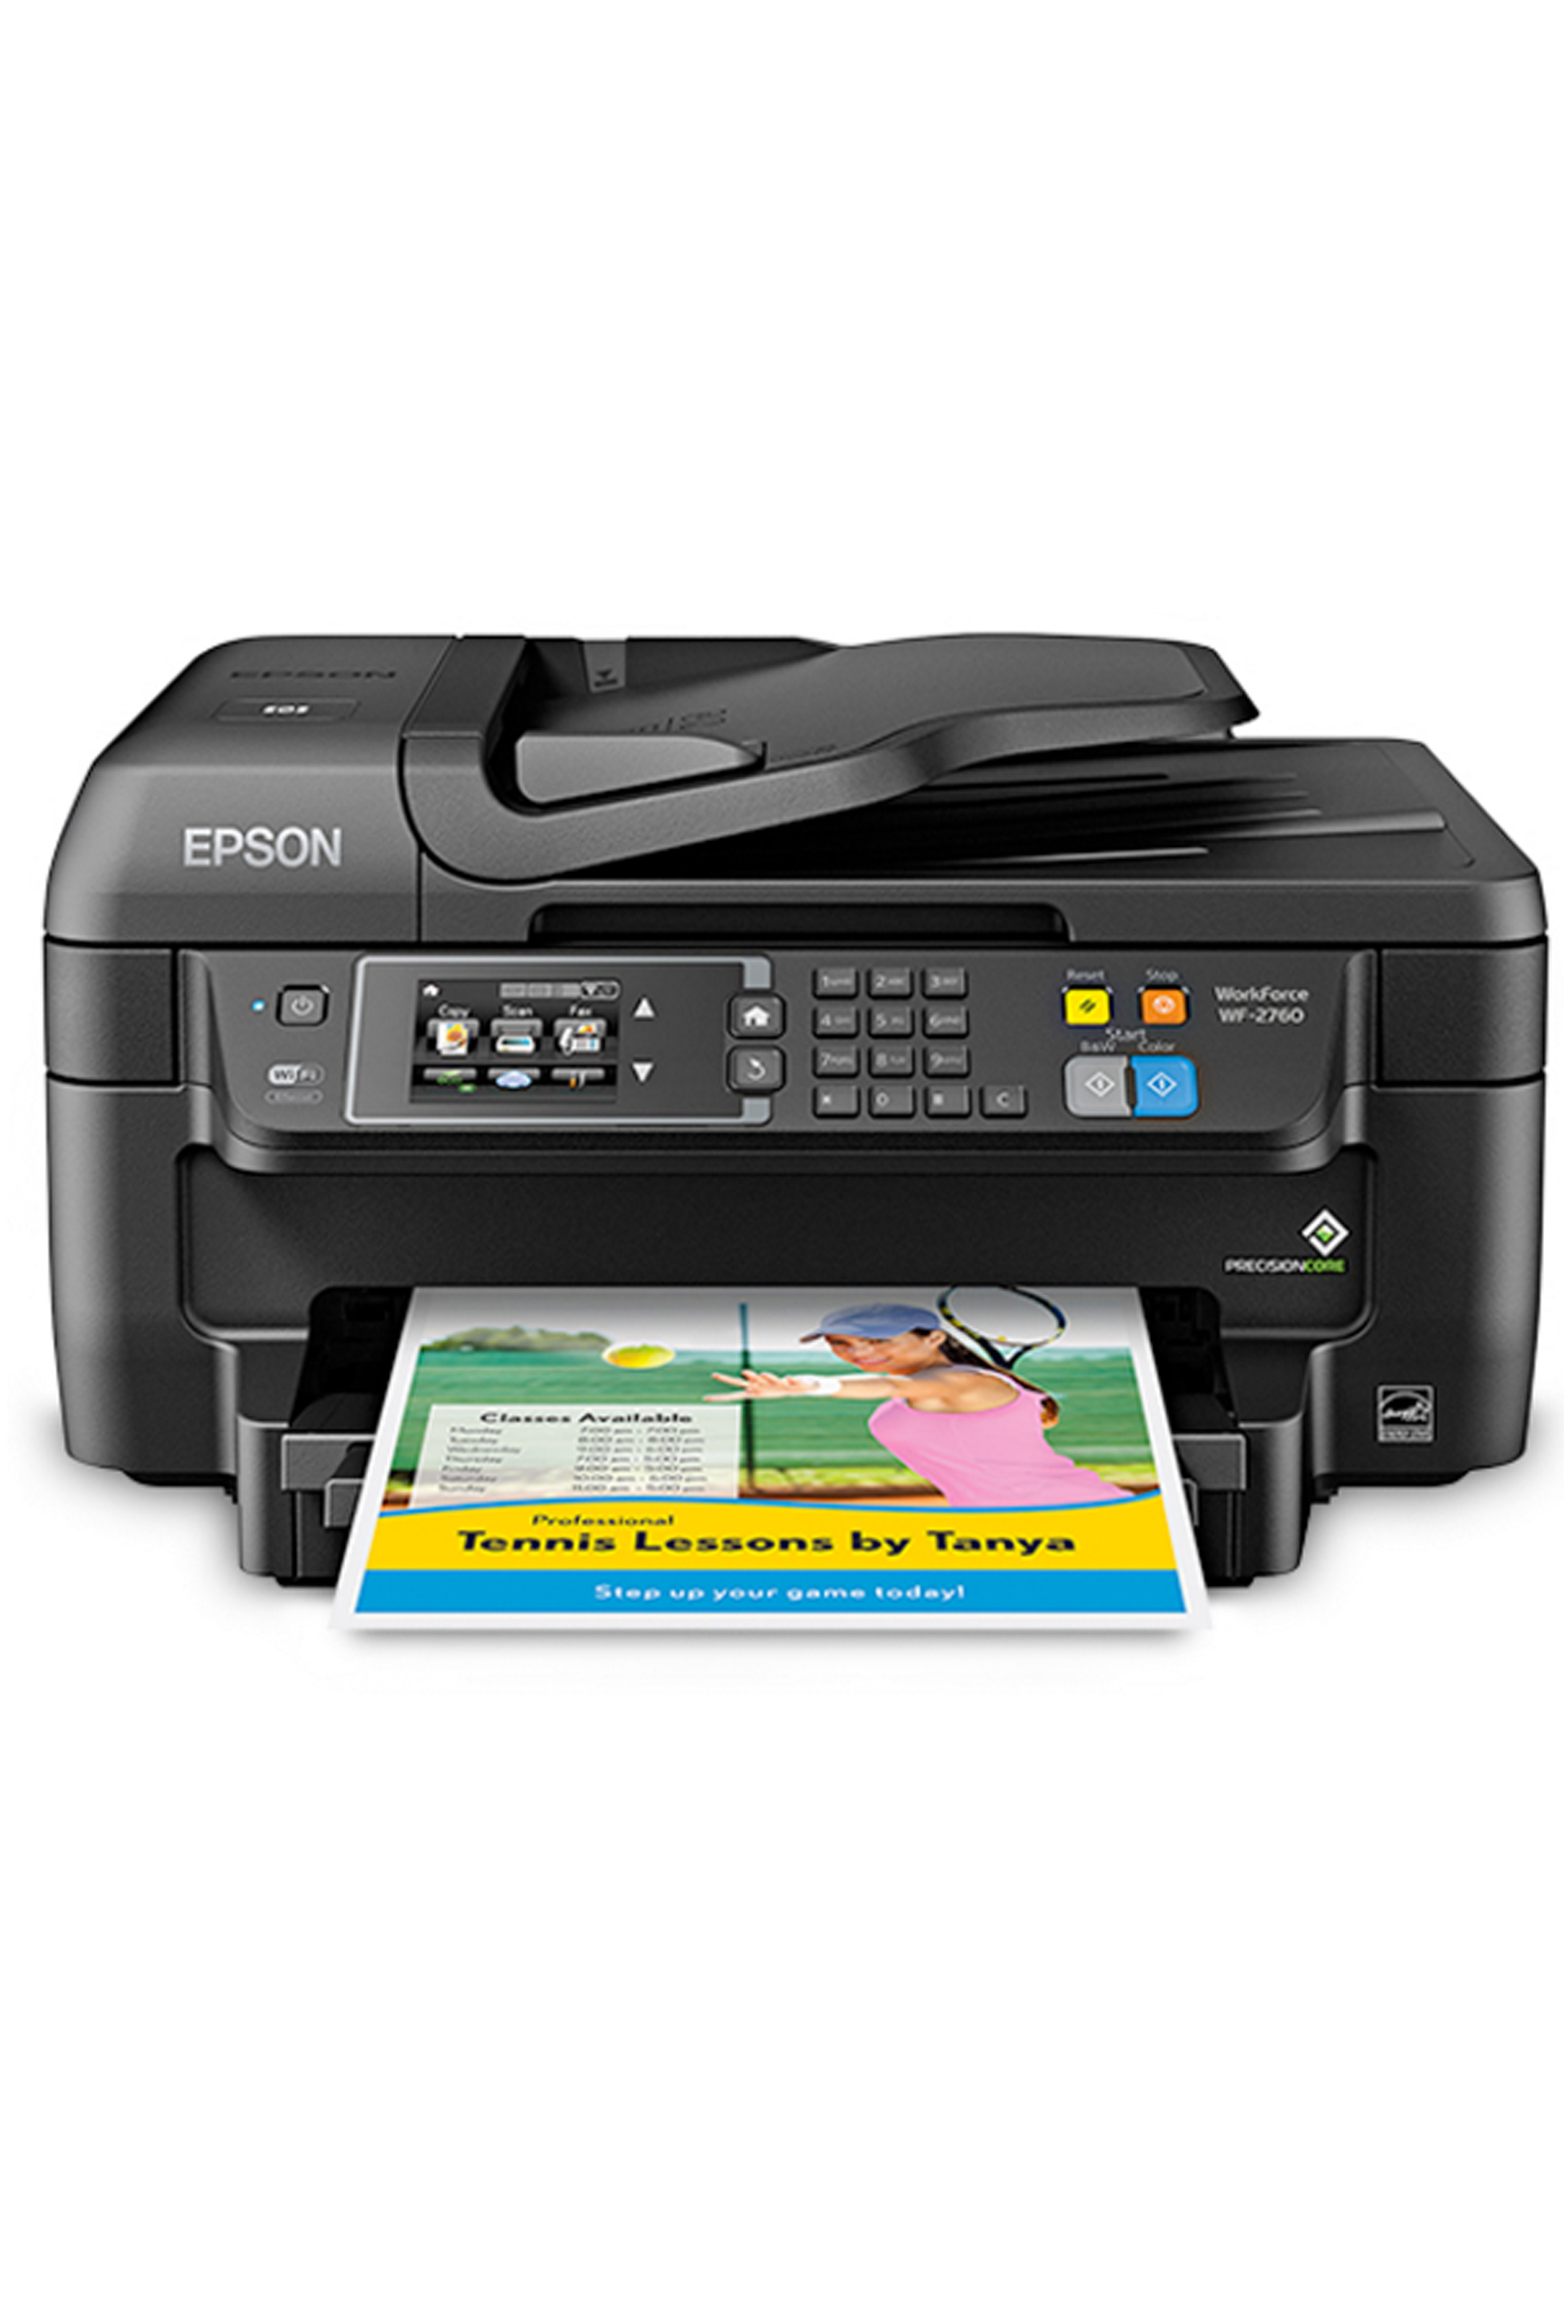 Epson WorkForce WF-2760 All-in-One Printer (13.7/7.3ppm)